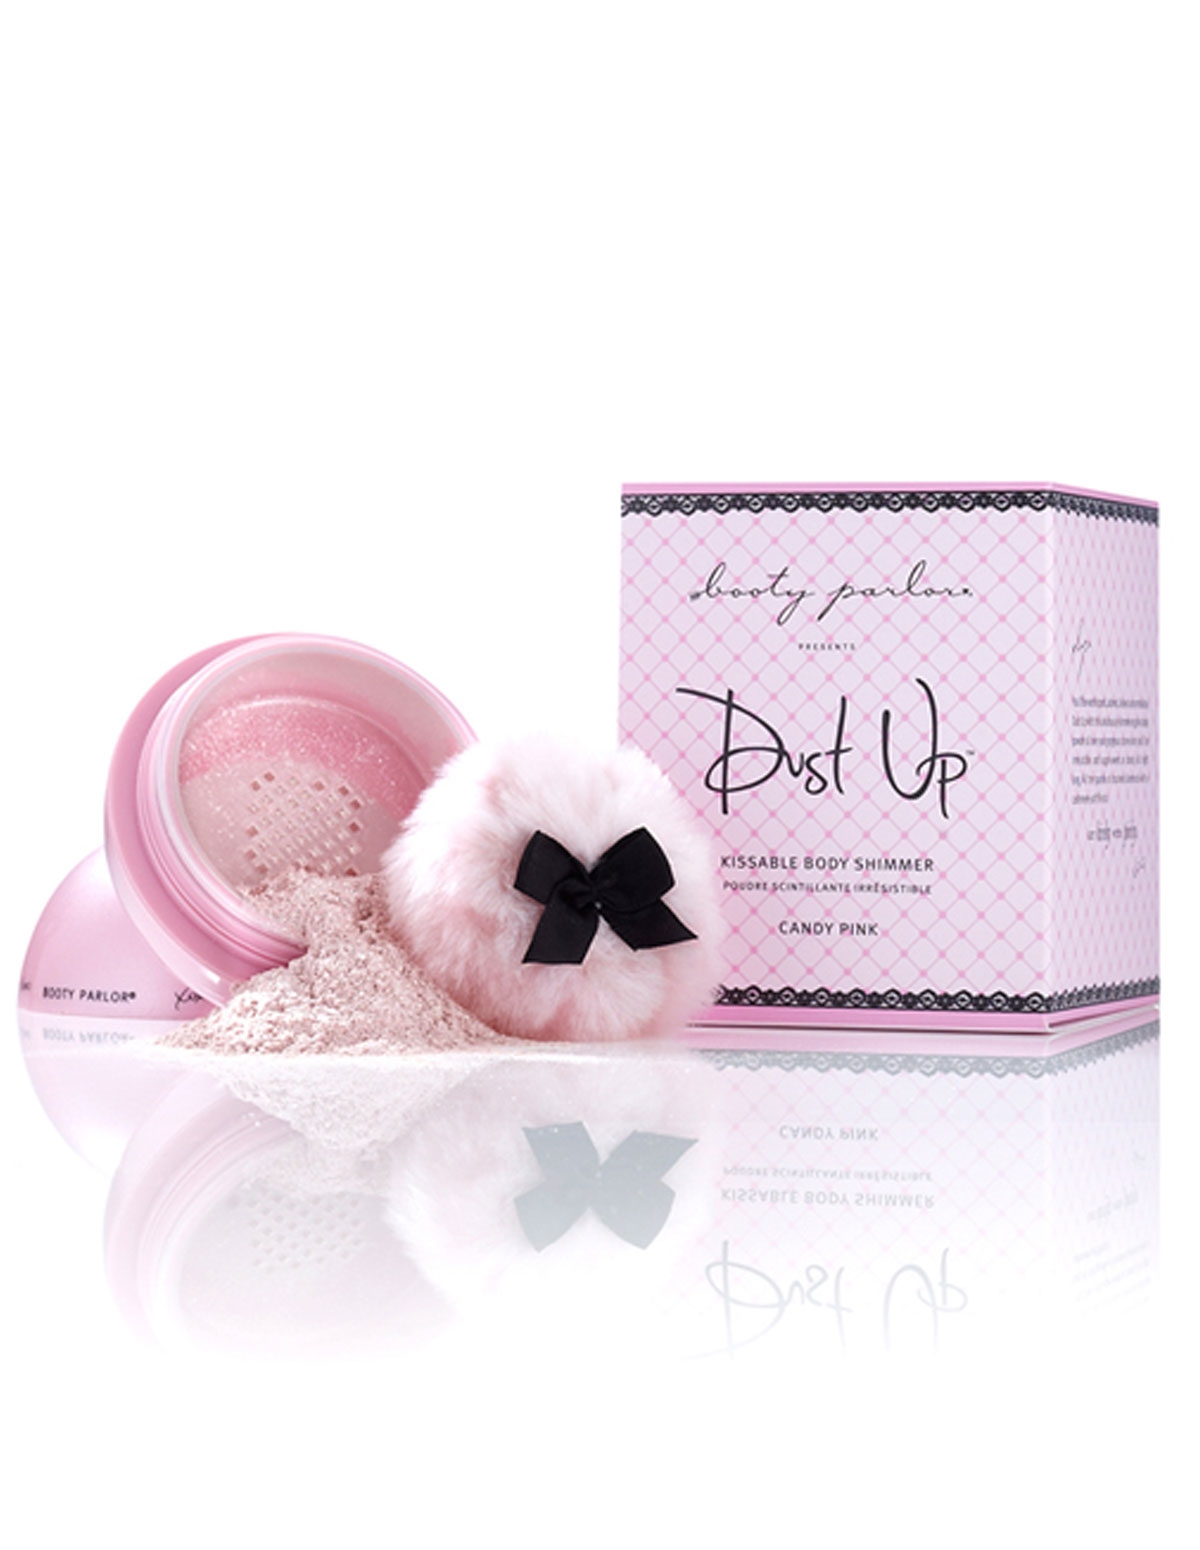 Dust Up Body Shimmer